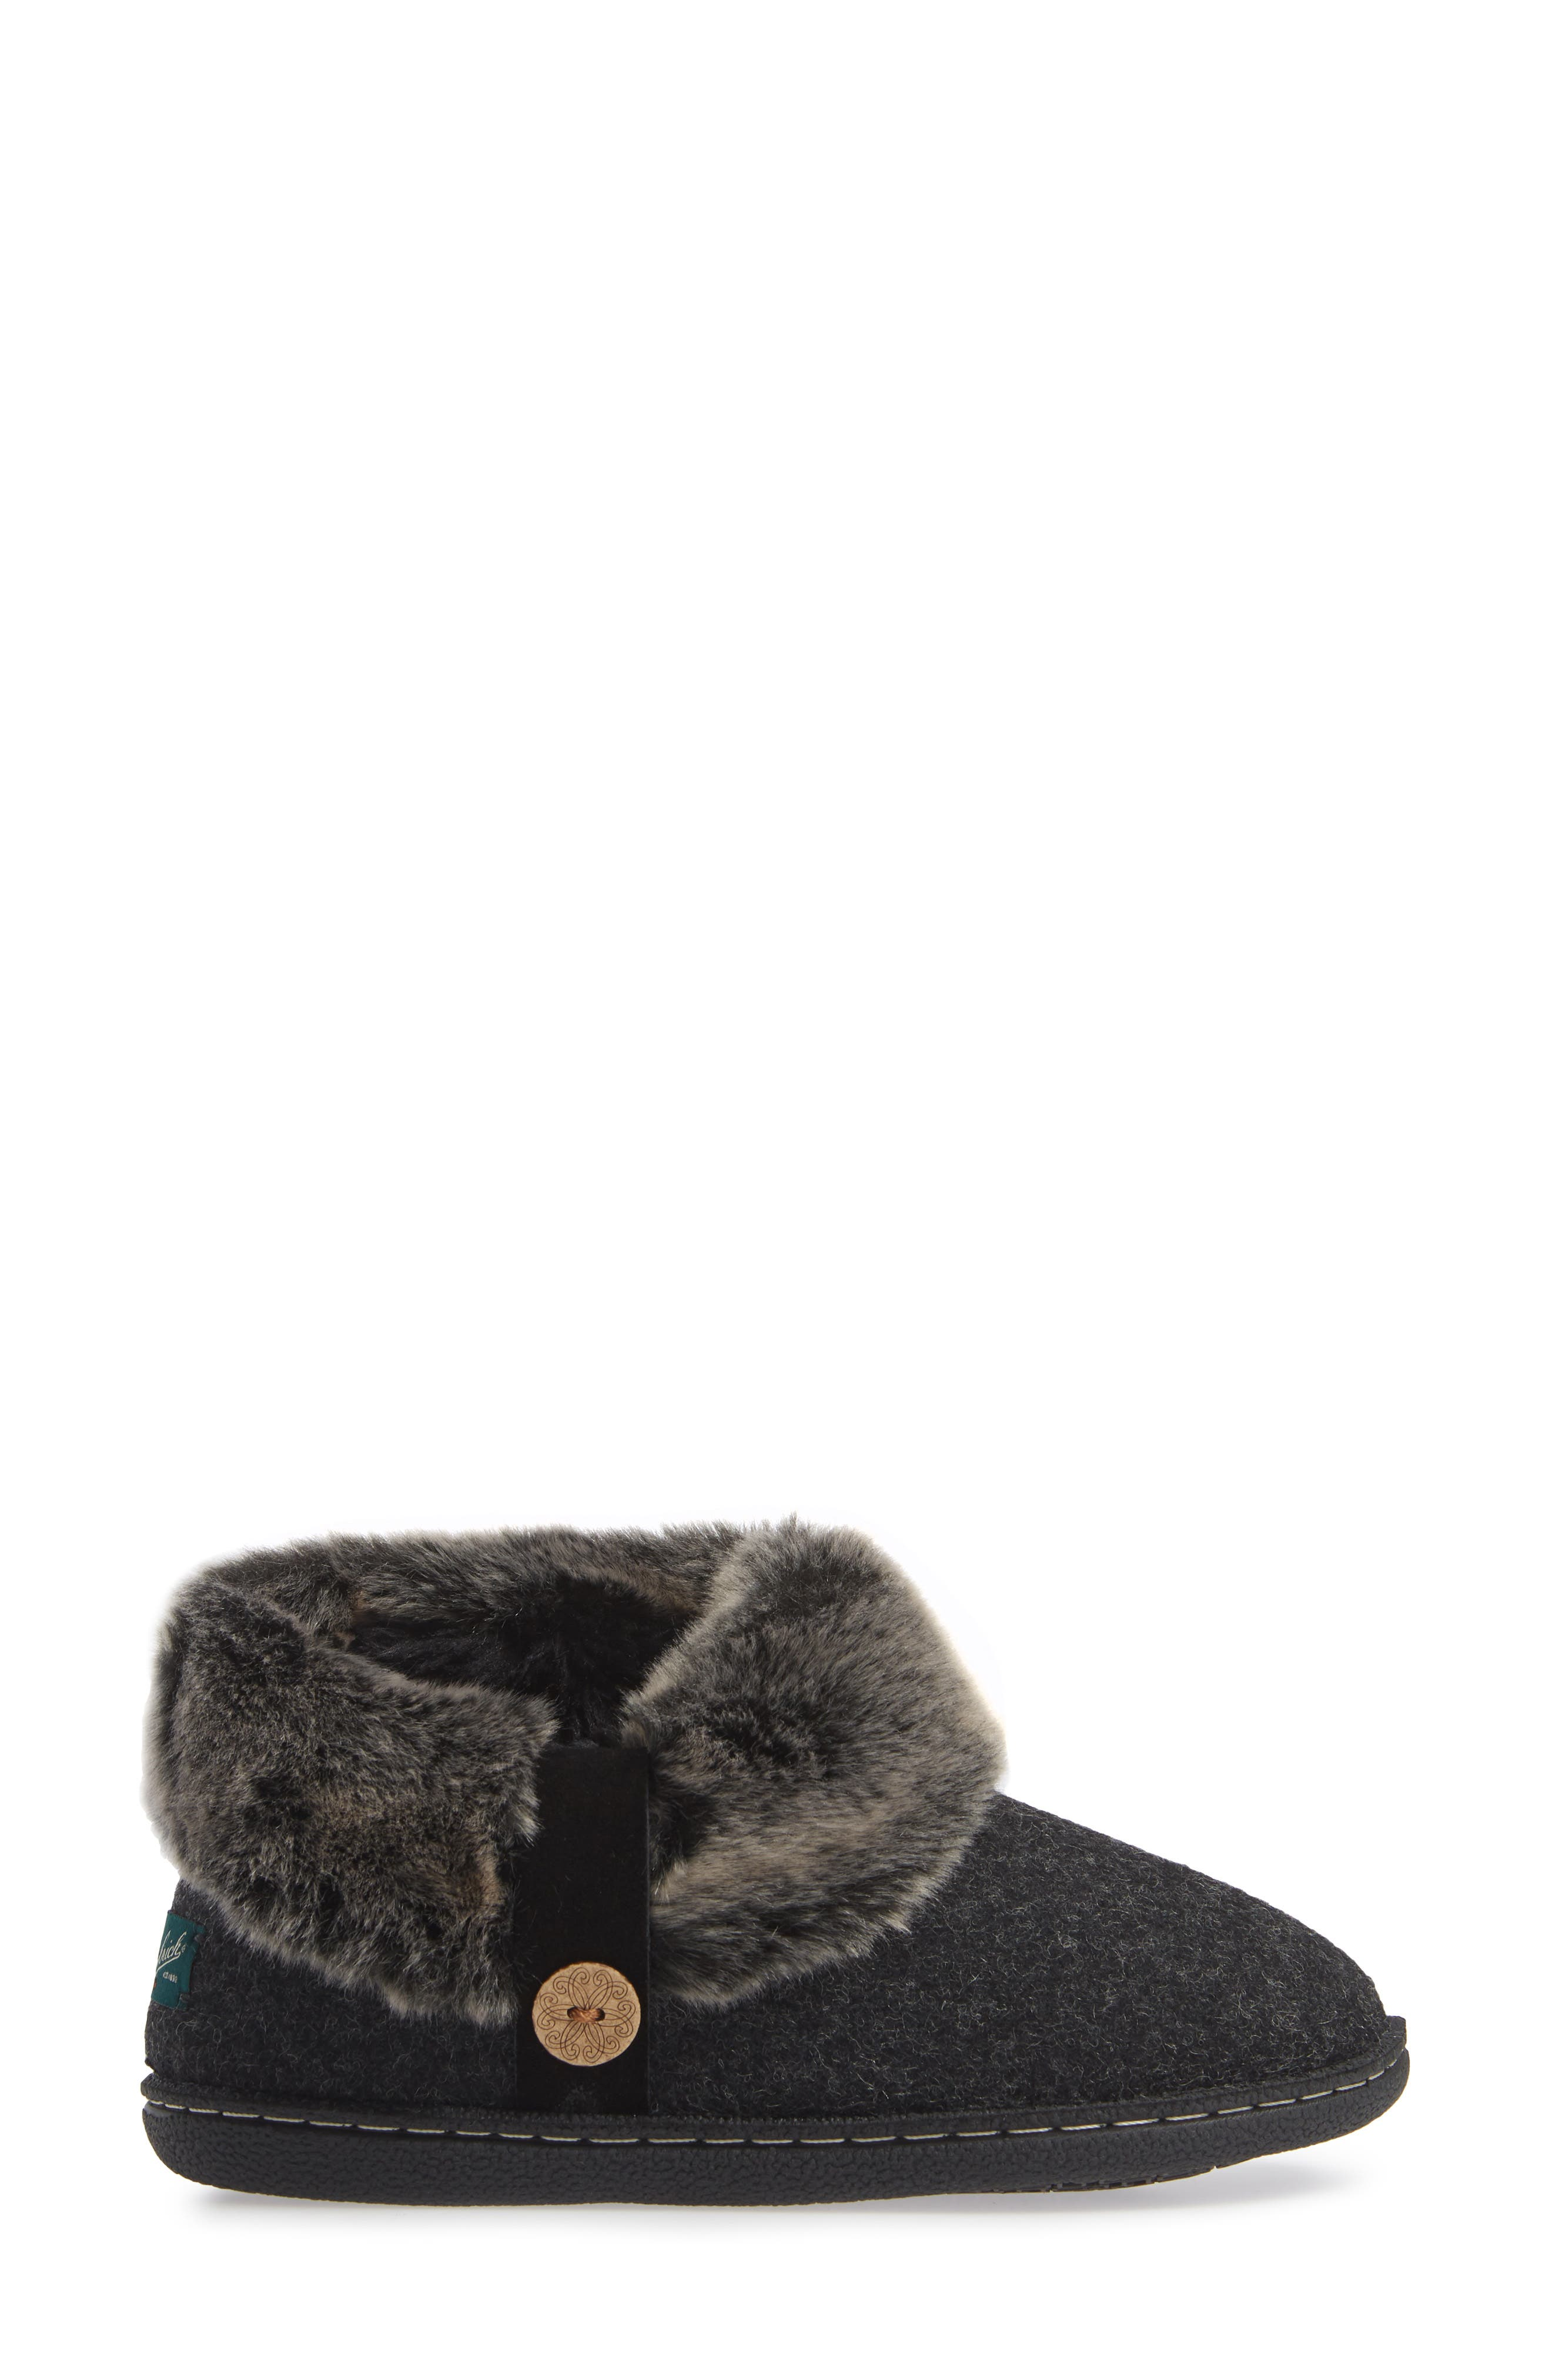 Grand Lodge Slipper,                             Alternate thumbnail 3, color,                             BLACK WOOL